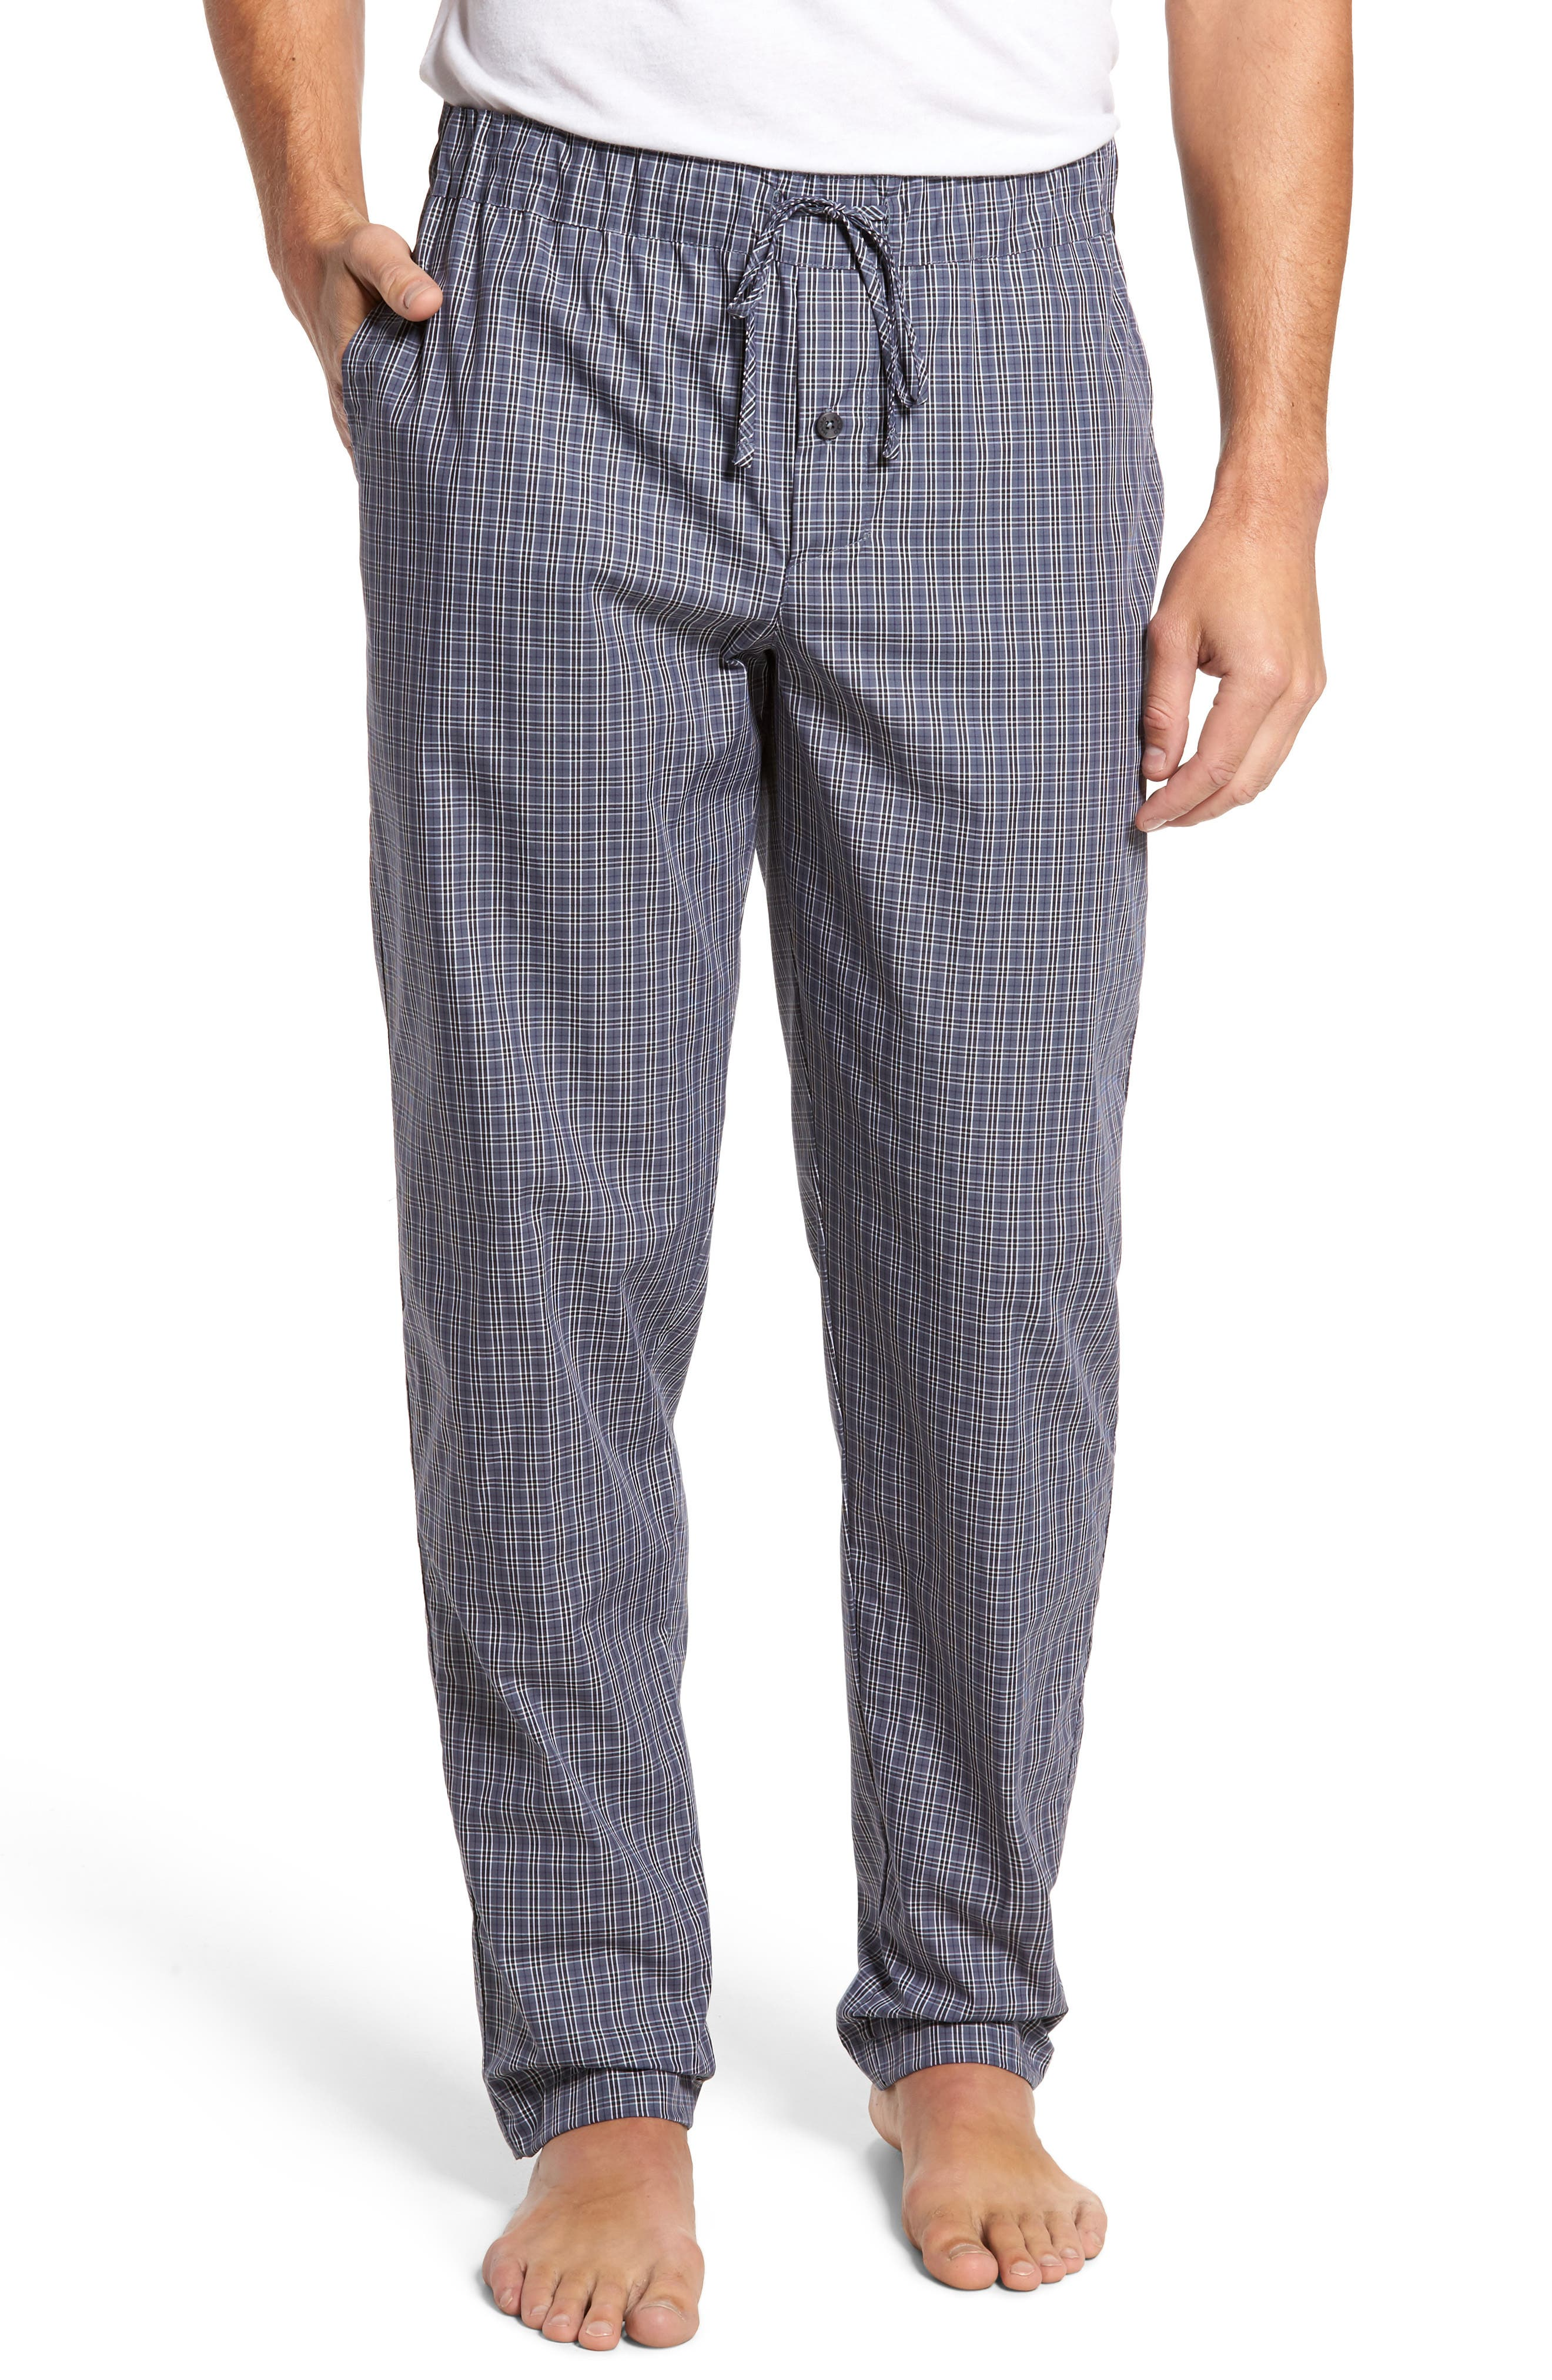 Night & Day Woven Lounge Pants,                         Main,                         color, GREY CHECK